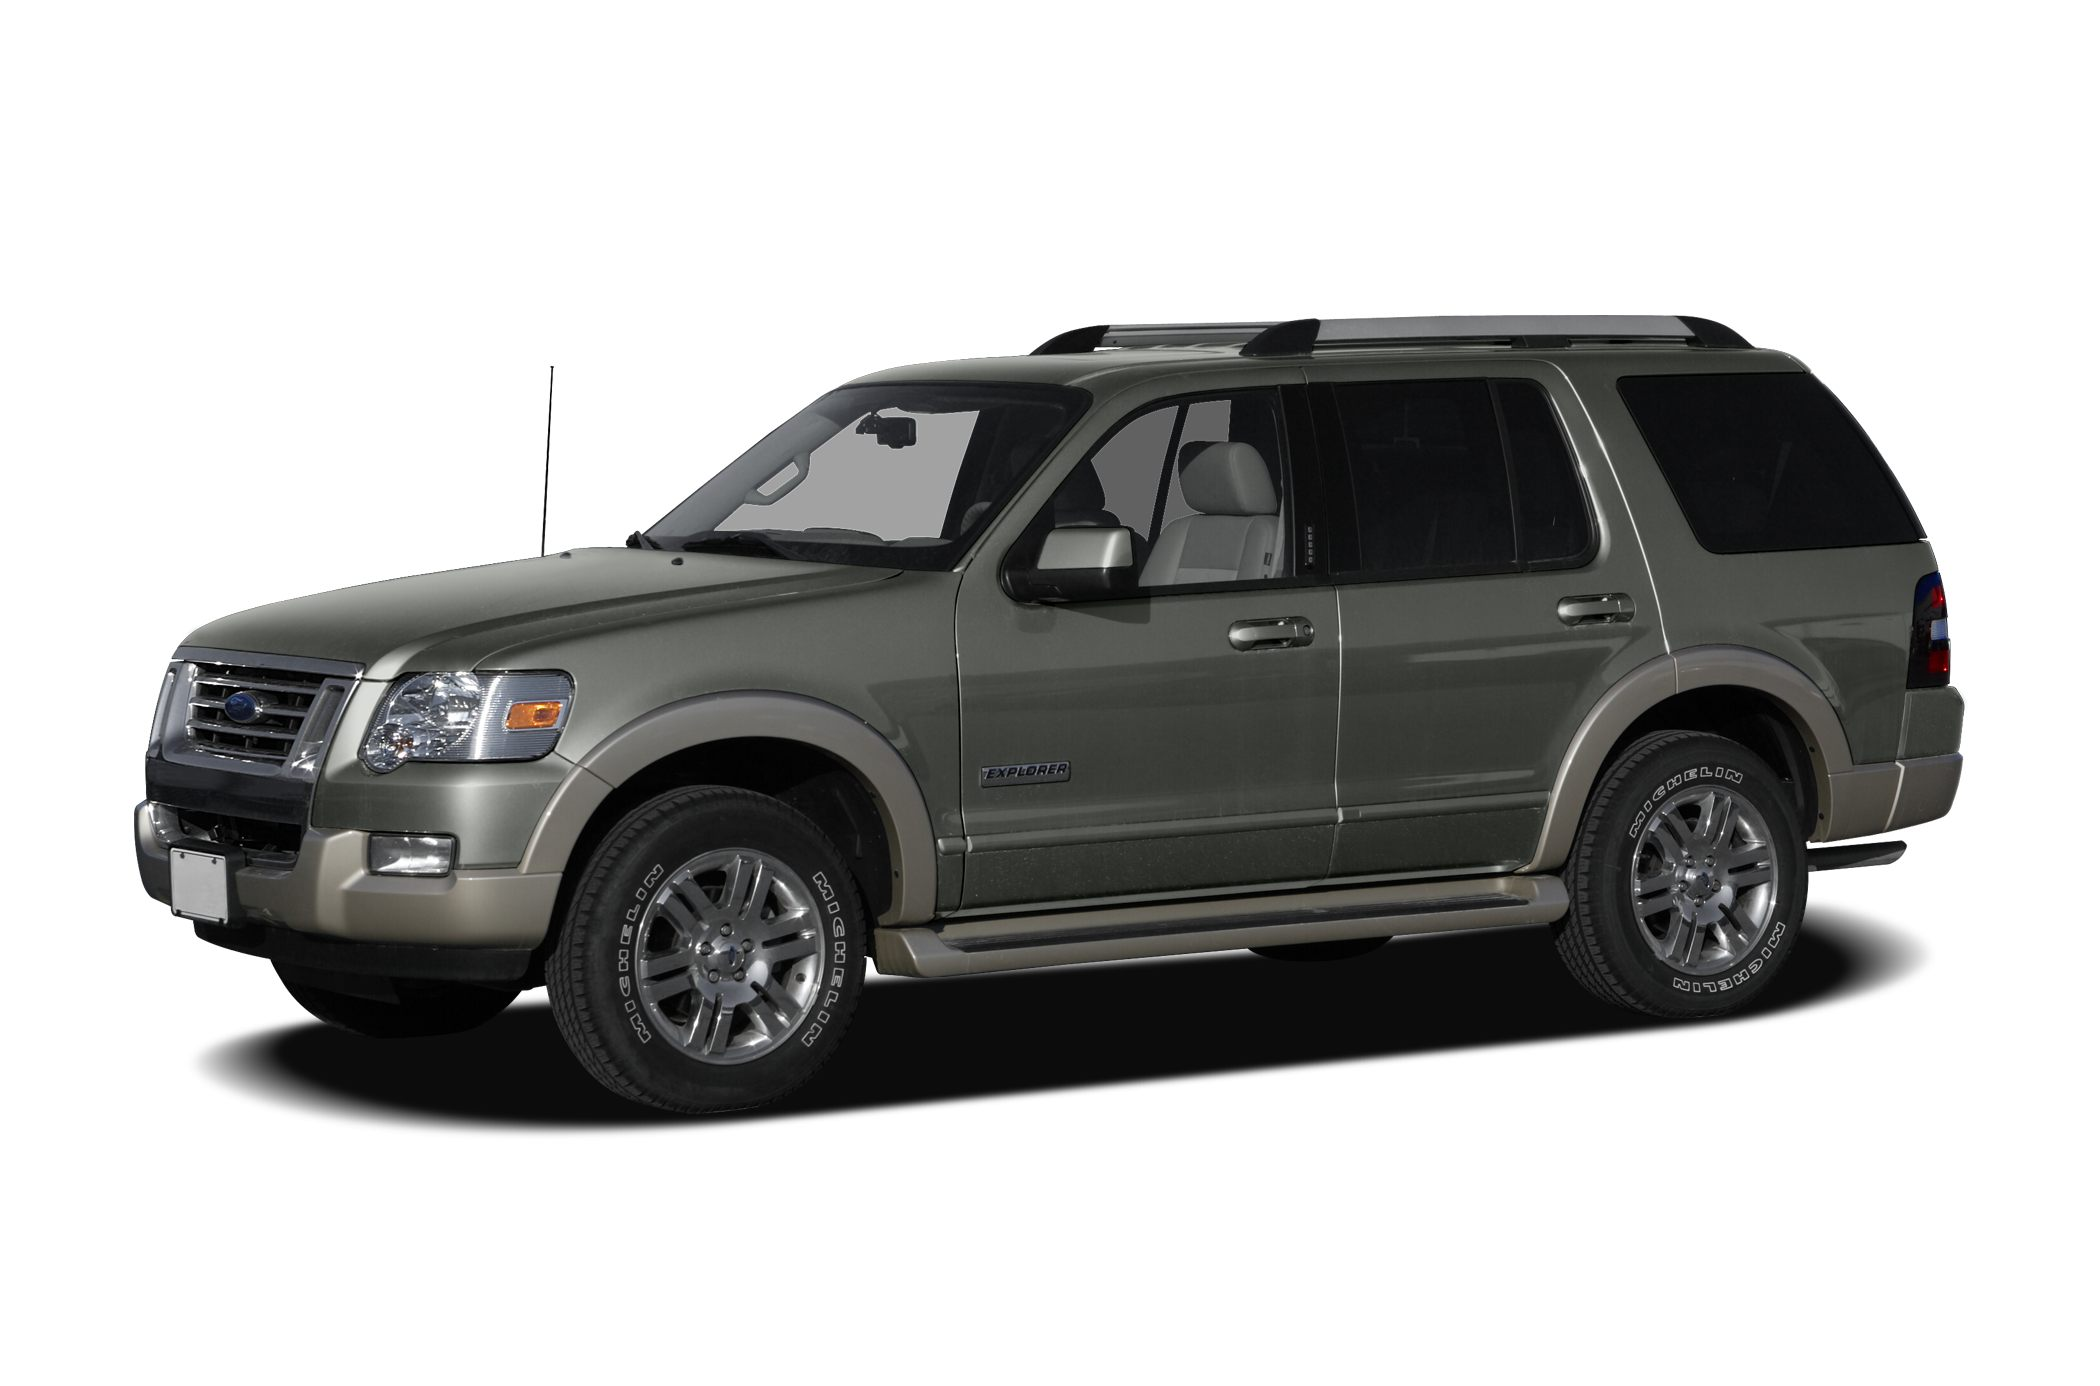 2007 Ford Explorer XLT OUR PRICESYoure probably wondering why our prices are so much lower than